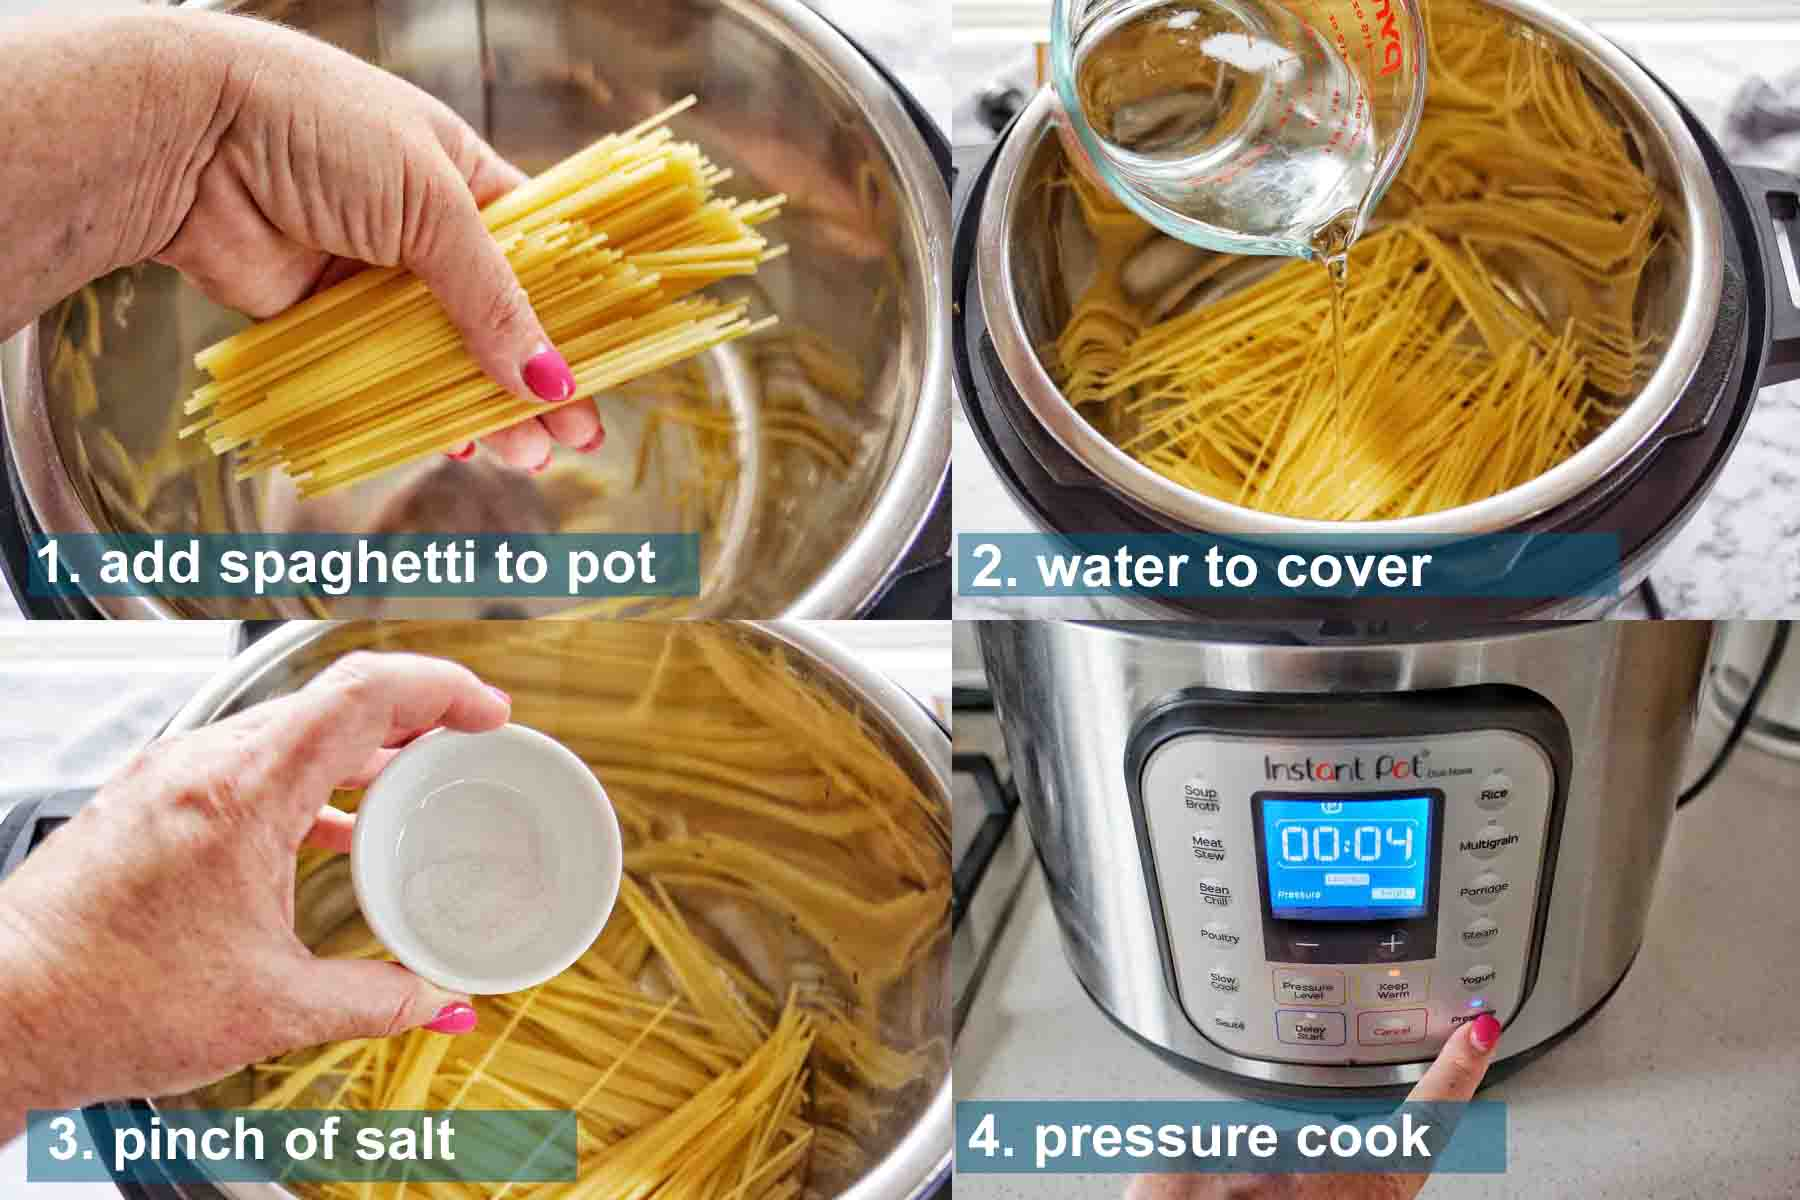 Instant Pot Spaghetti Noodles method 1 to 4 with text labels